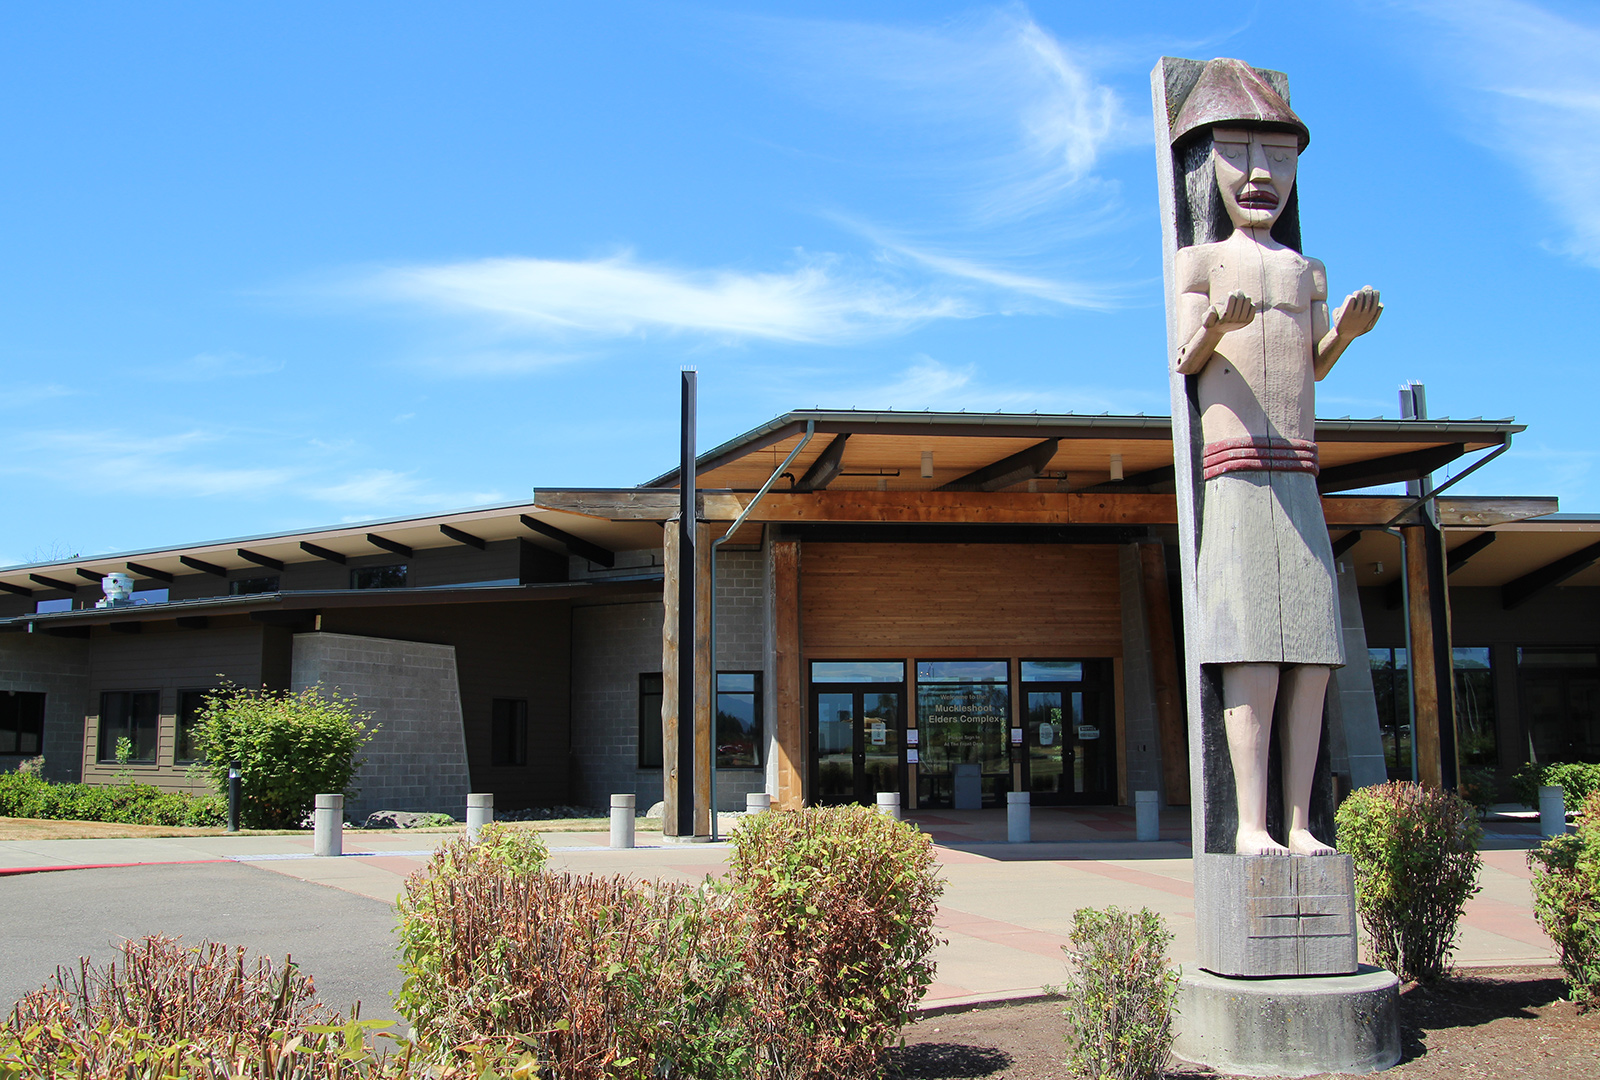 An architecturally-modern center for Muckleshoot Indian Tribal elders  stands against a bright, blue sky. A large totem pole stands in front of the center.